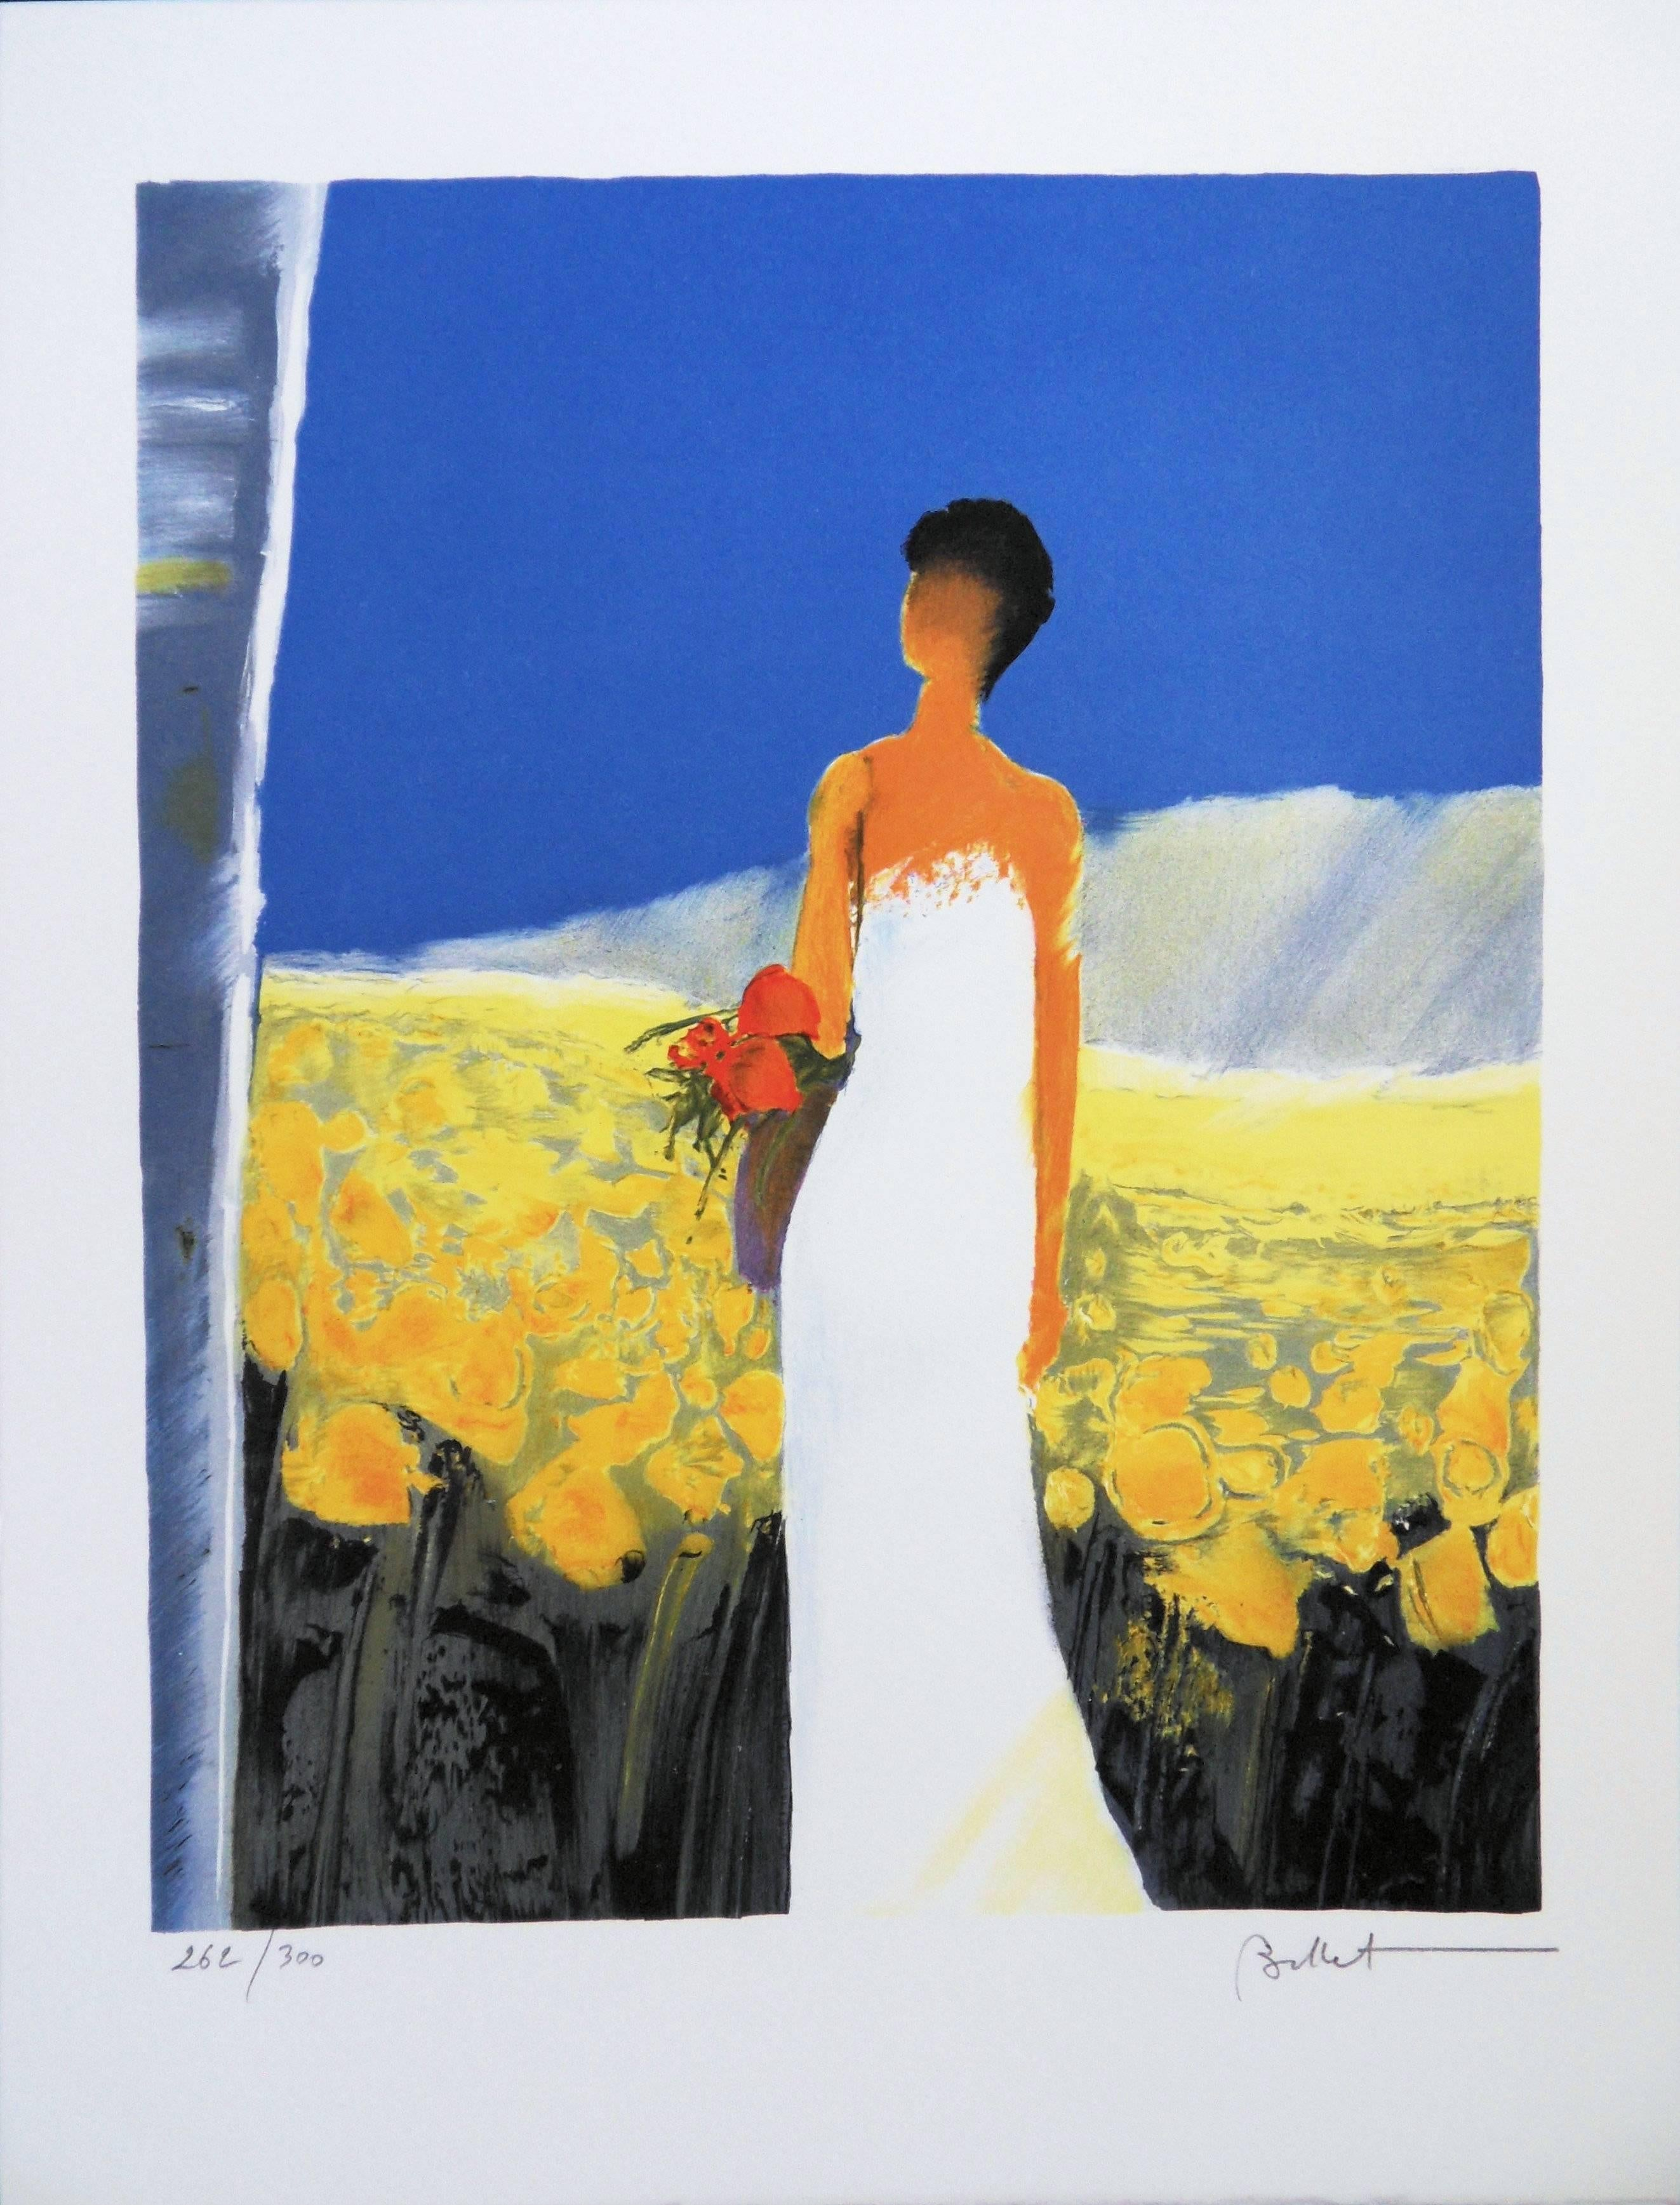 Bride in a Sunflowers Field - Handsigned lithograph